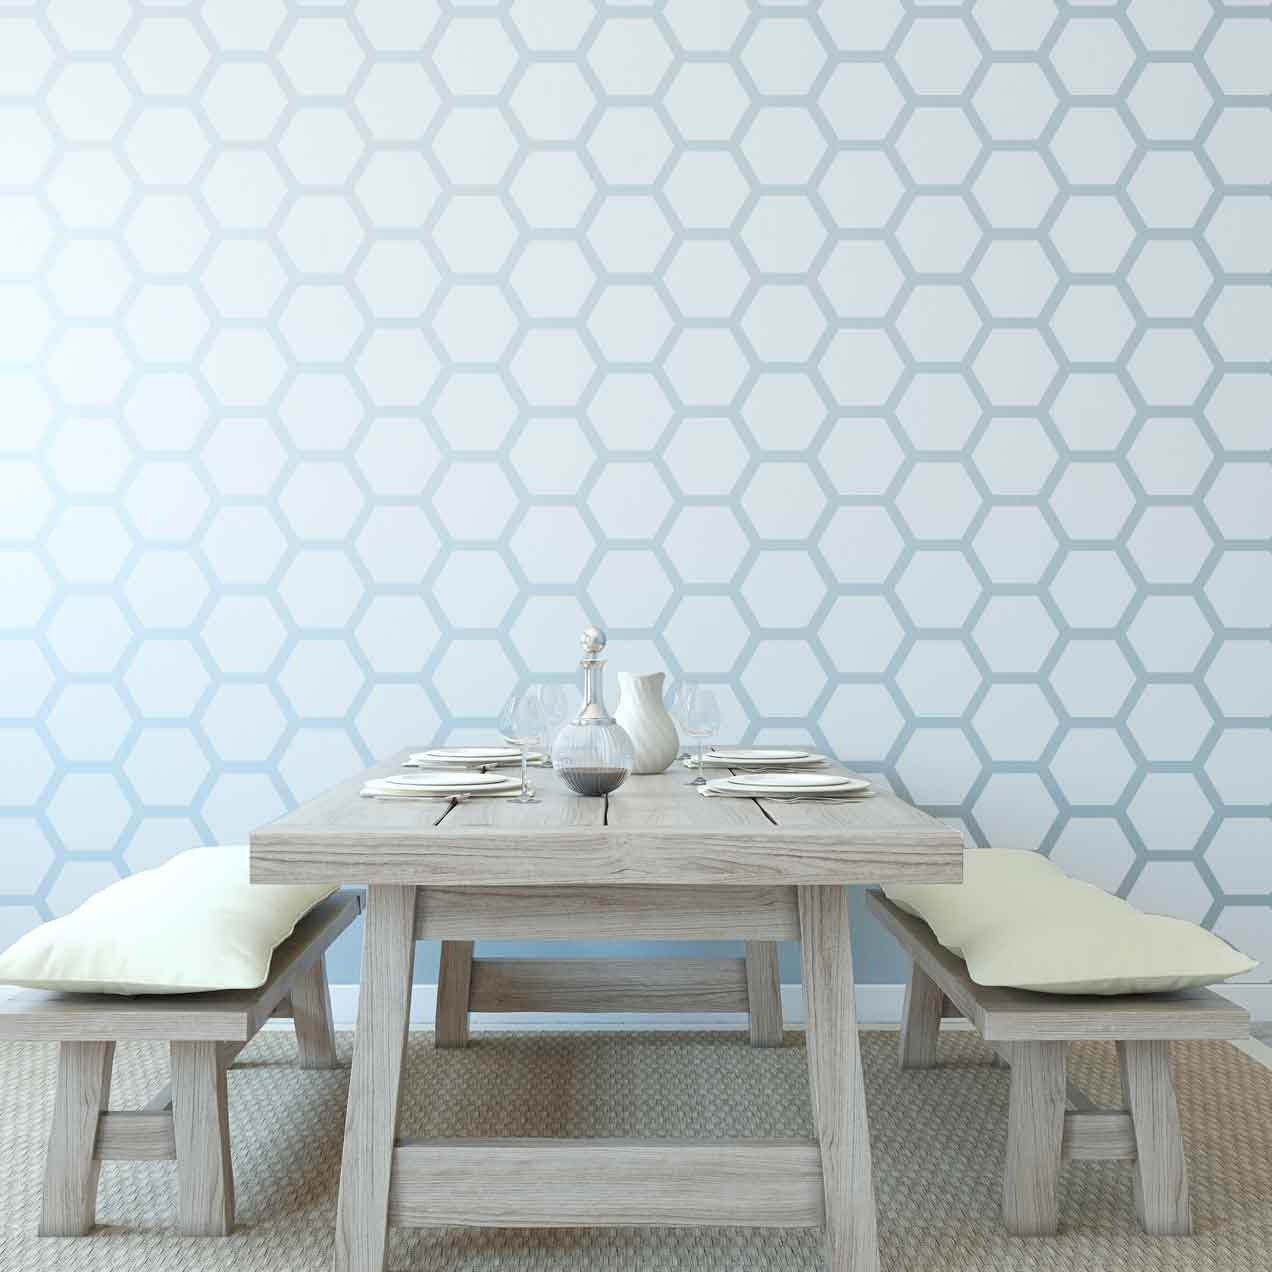 Honeycomb Wall Stencil Reusable Etsy